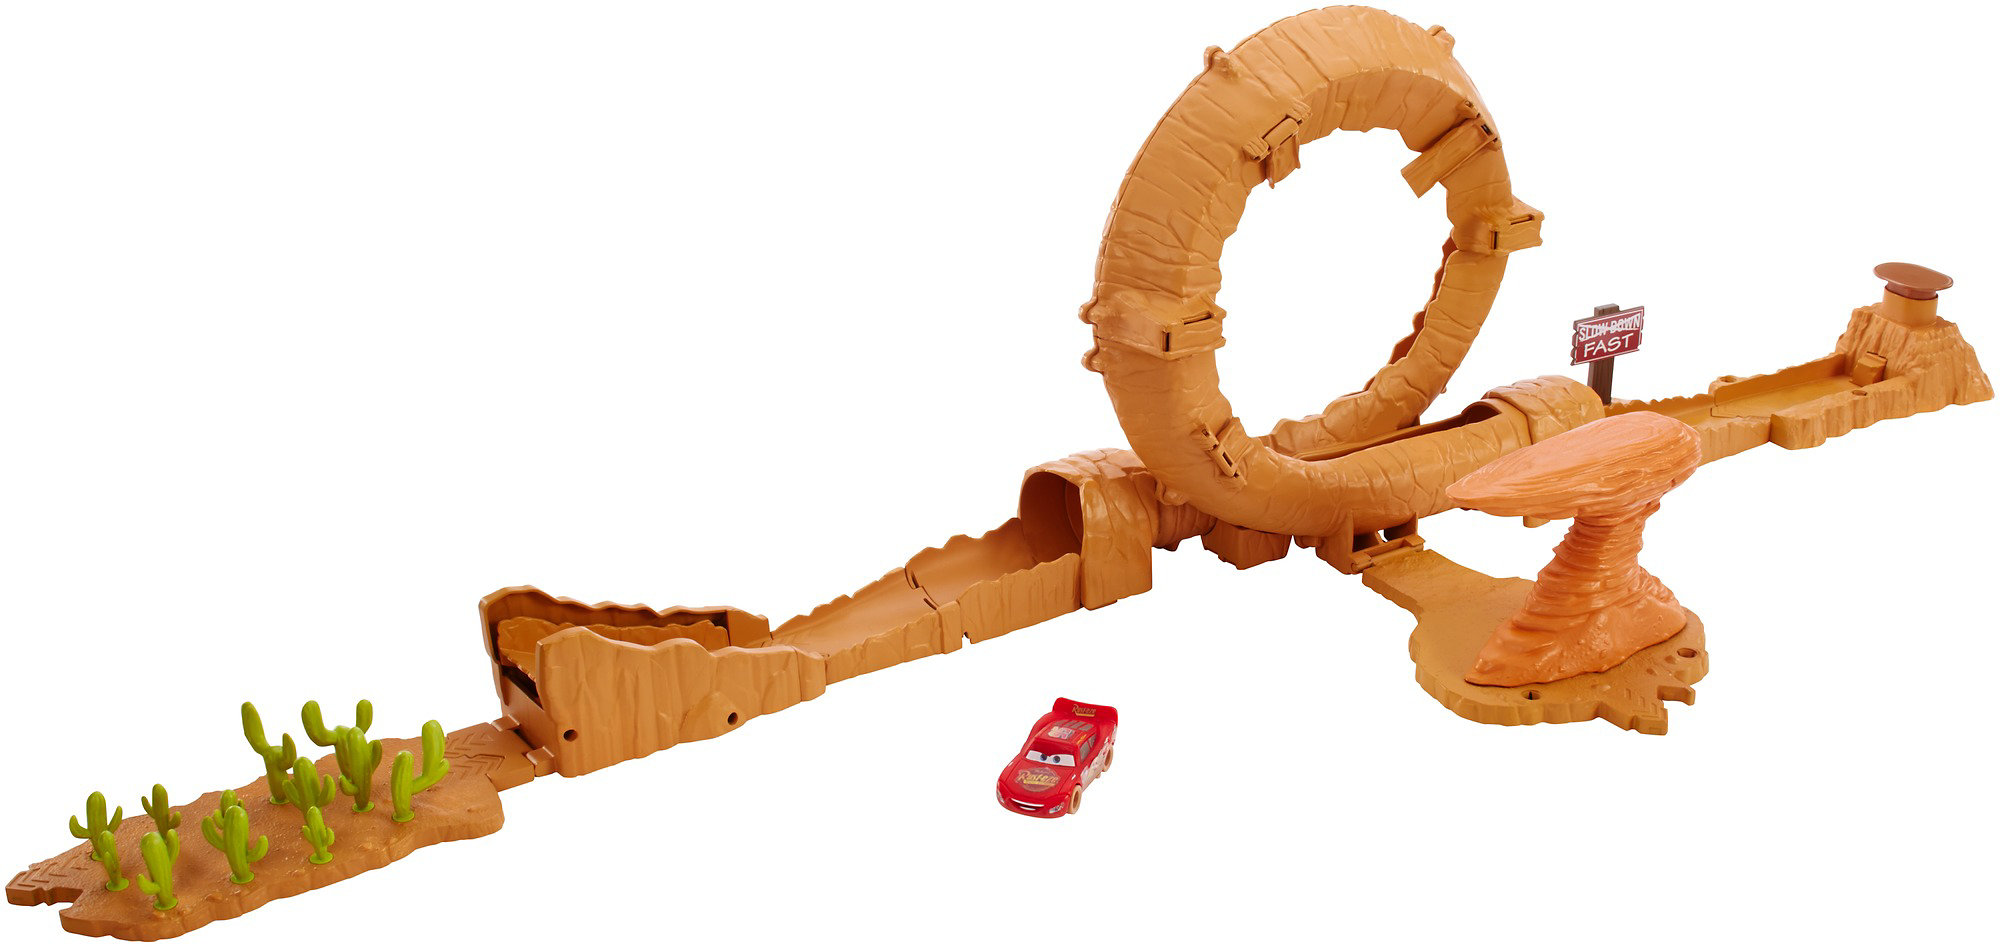 Disney Pixar Cars 3 Willy's Butte Transforming Track Set by Mattel